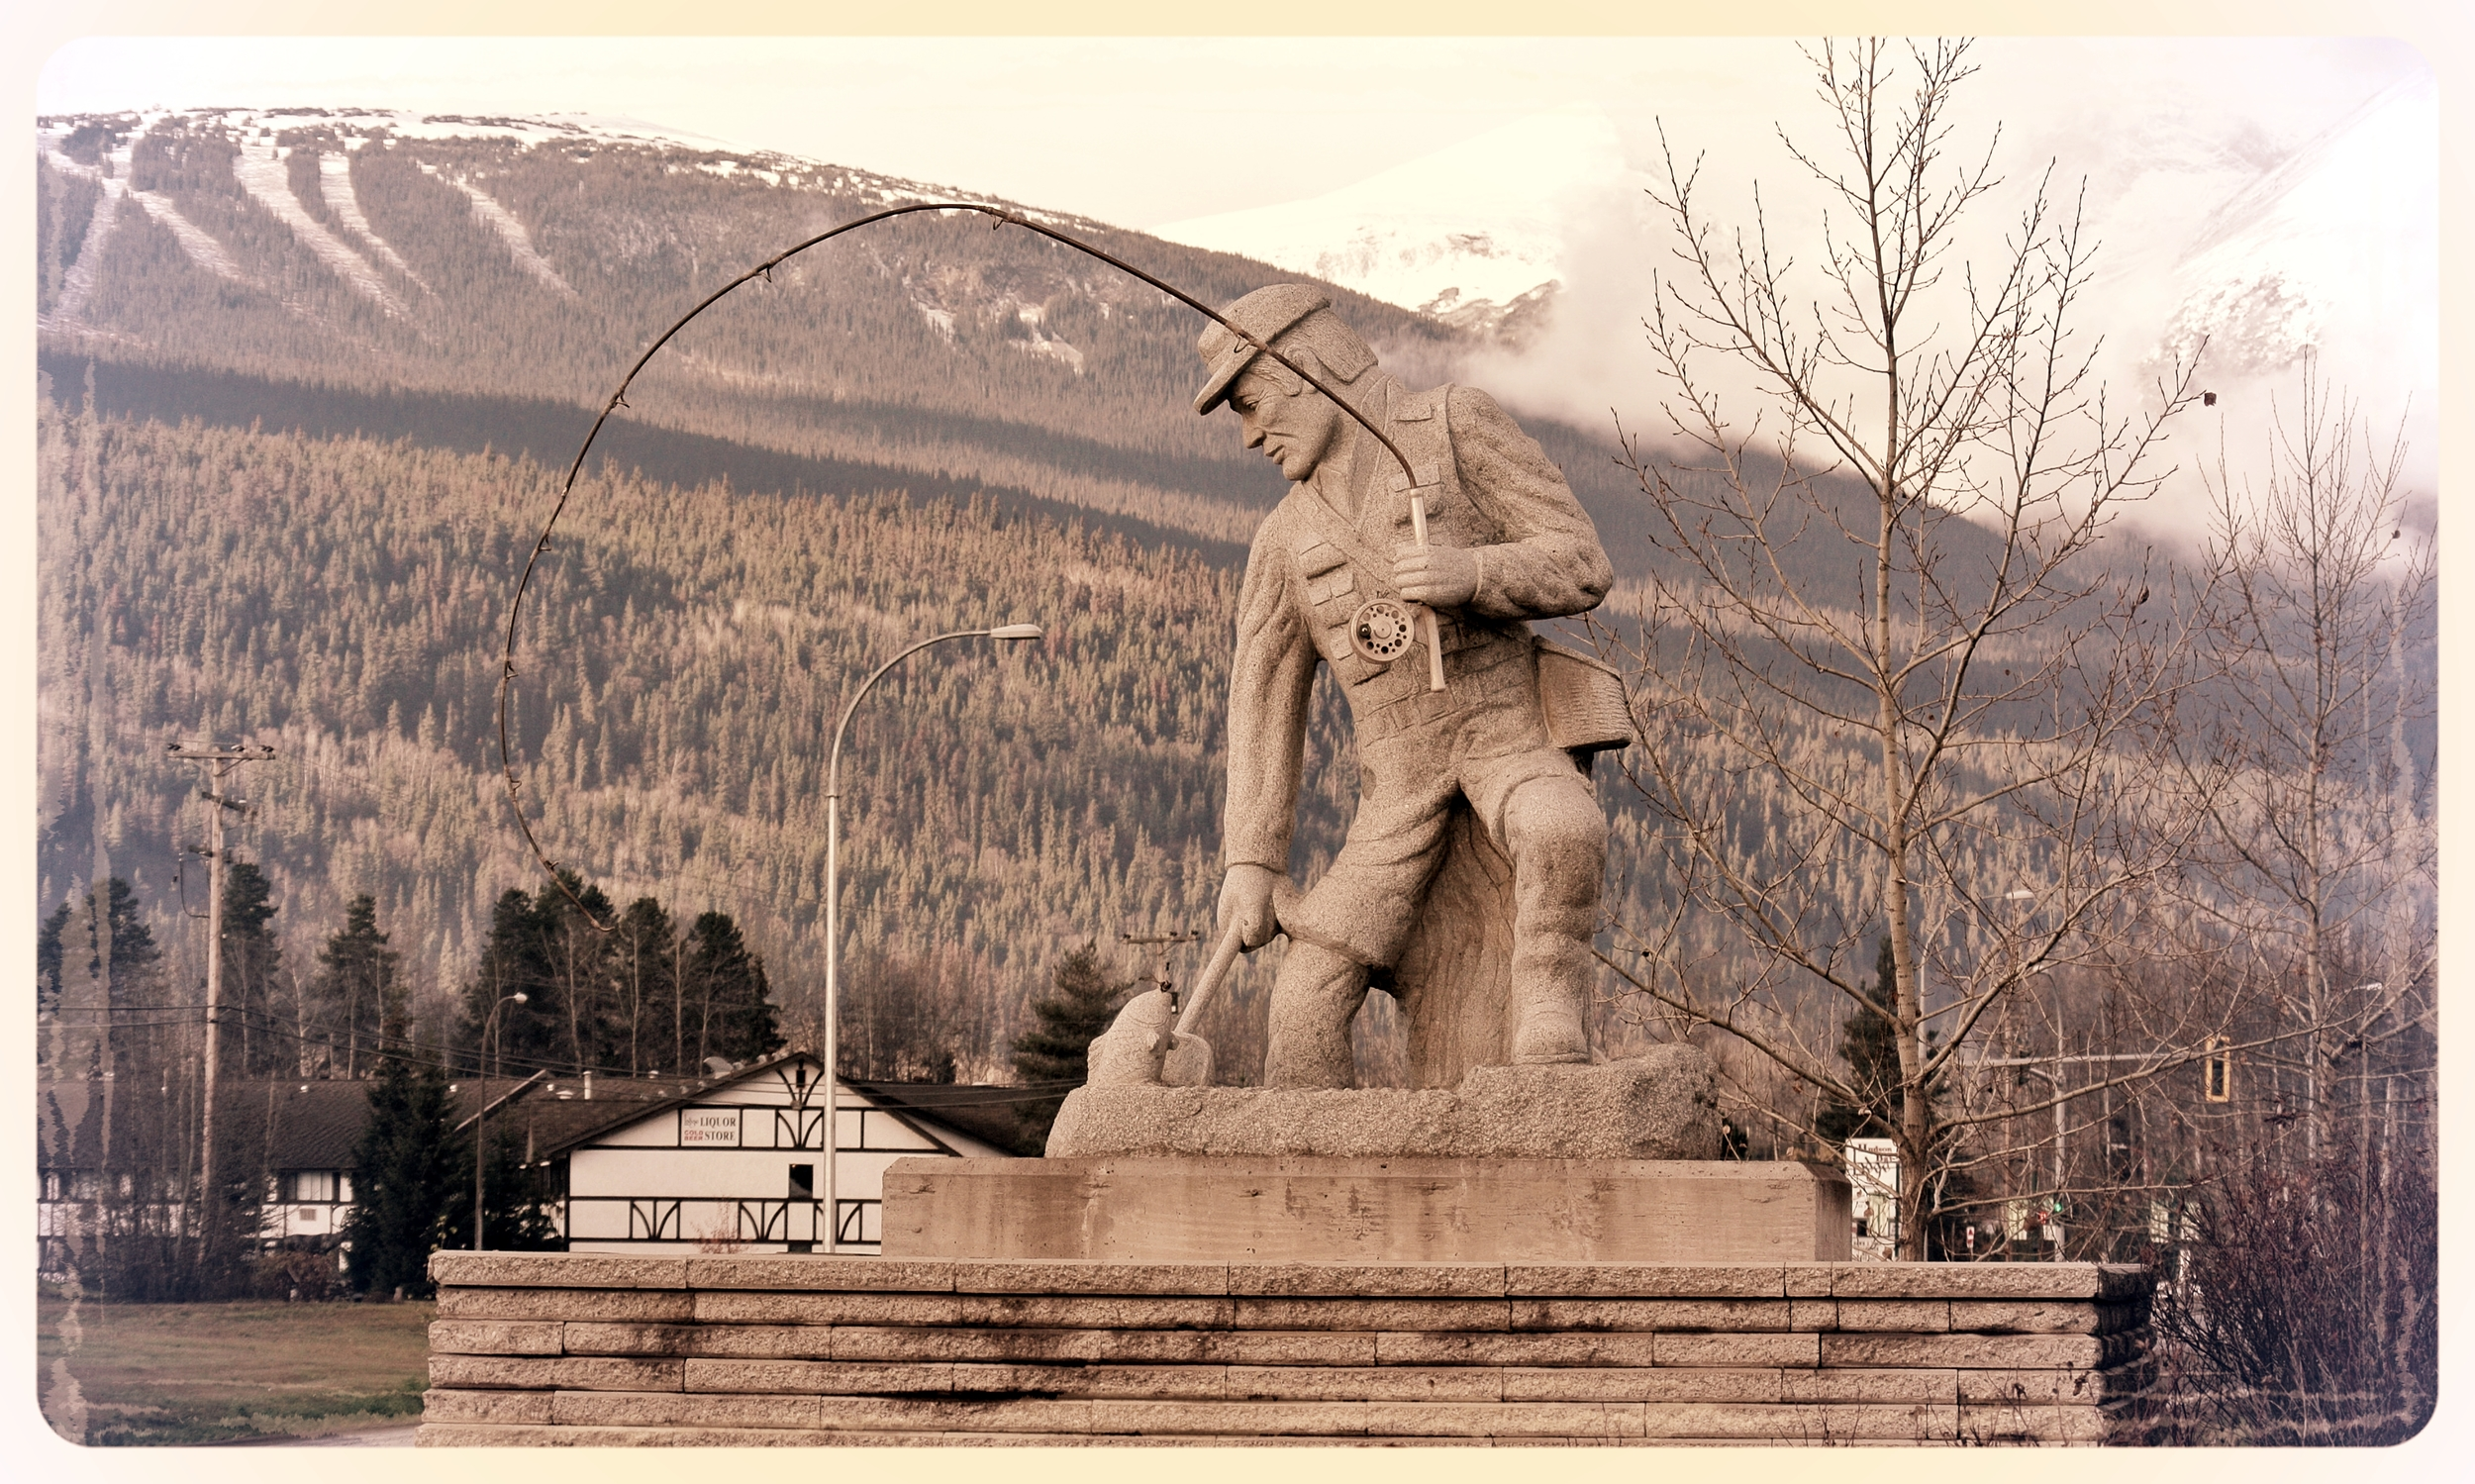 Angler Statue Smithers - Smithers Rodeo Club